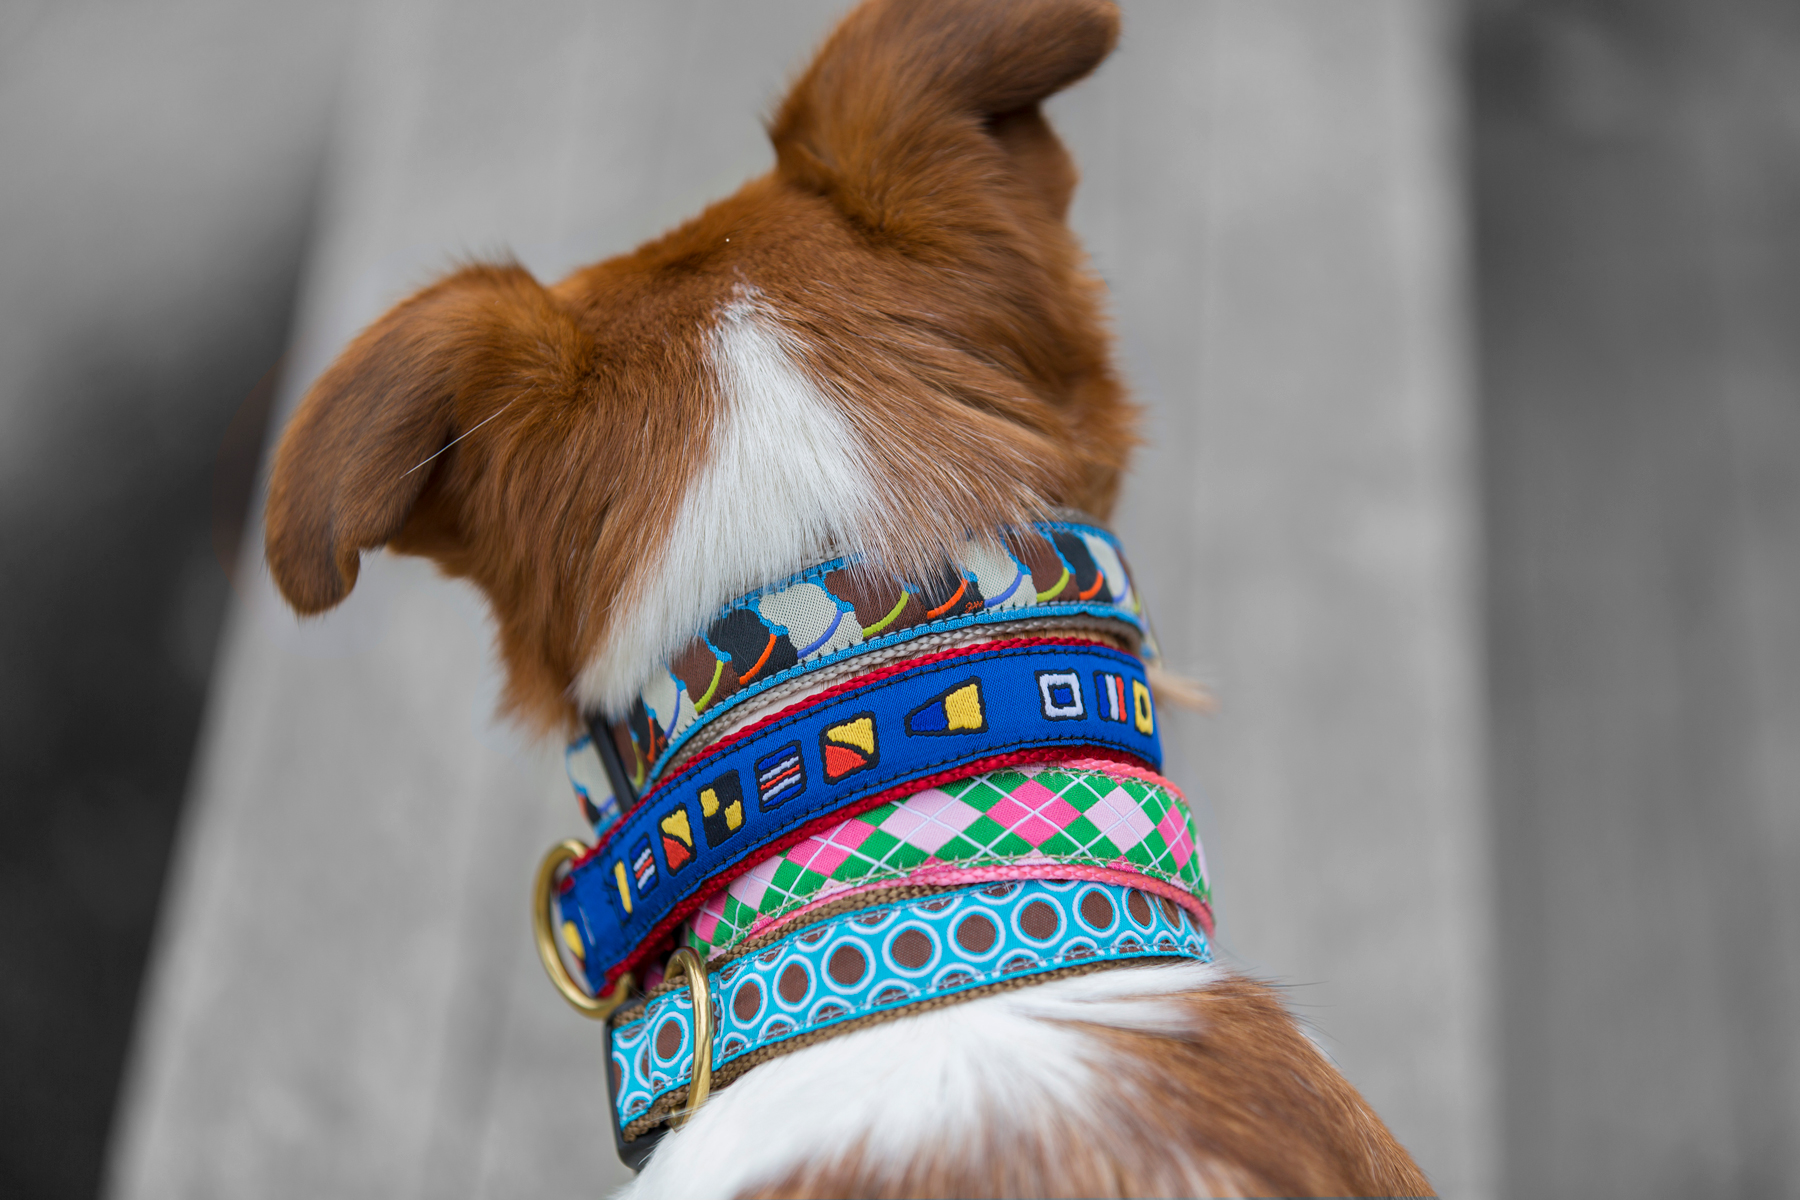 dog with collars on neck